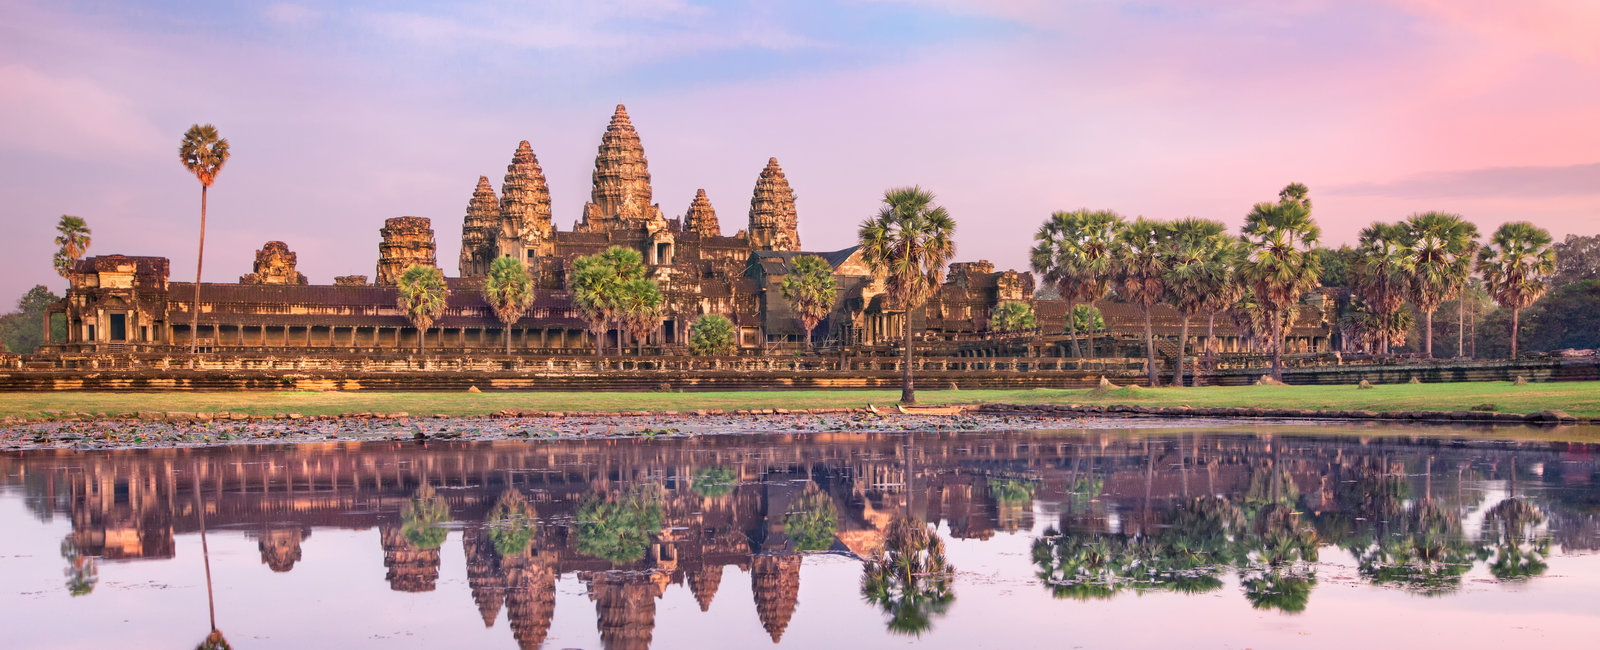 Famous Angkor Wat temple complex in sunset, near Siem Reap, Cambodia.Panoramic view.